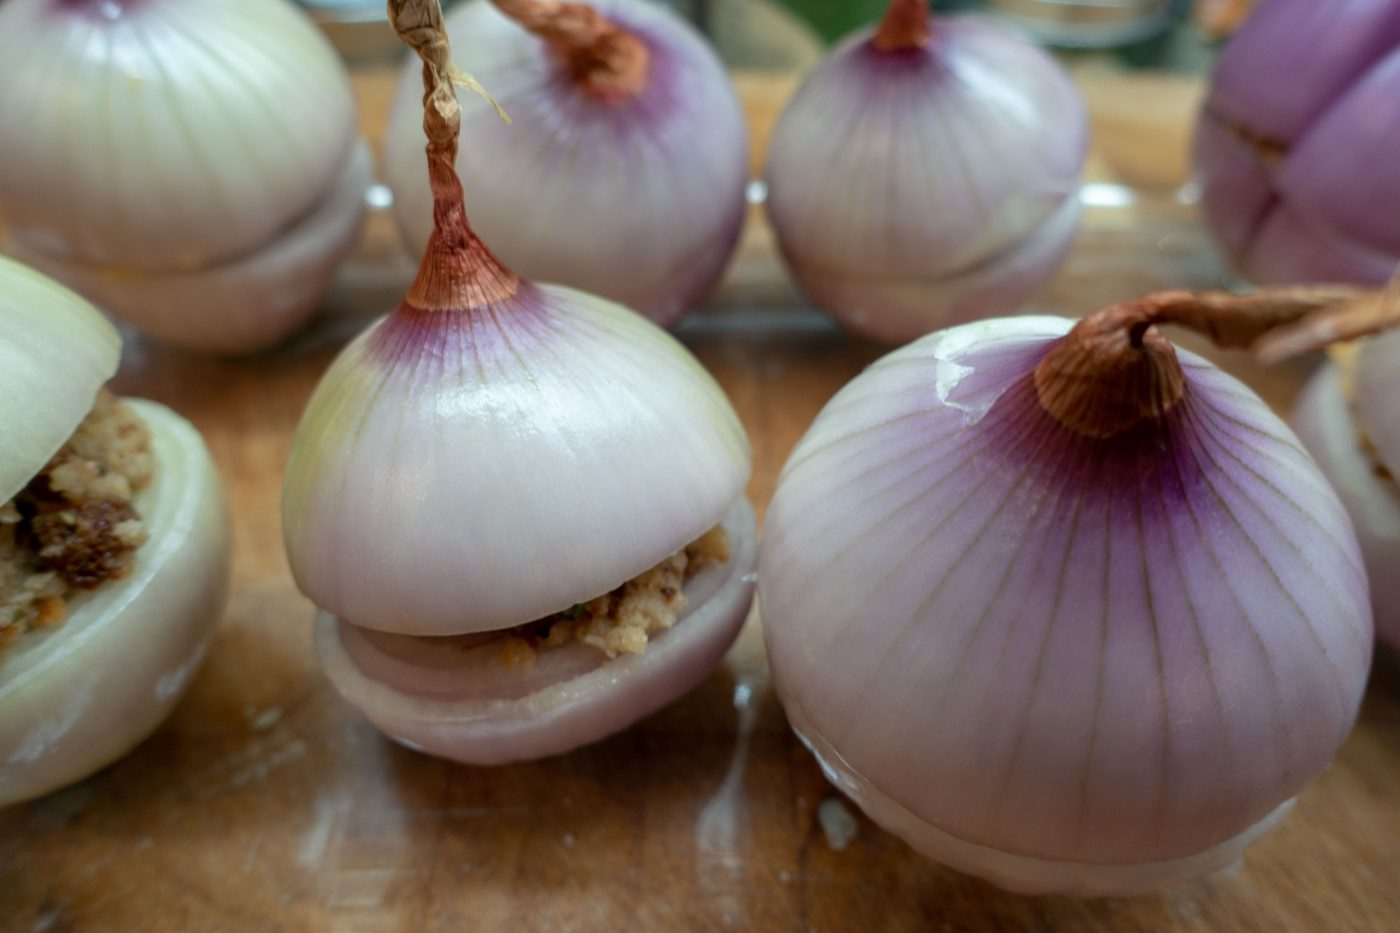 Pink Roscoff onions before baking